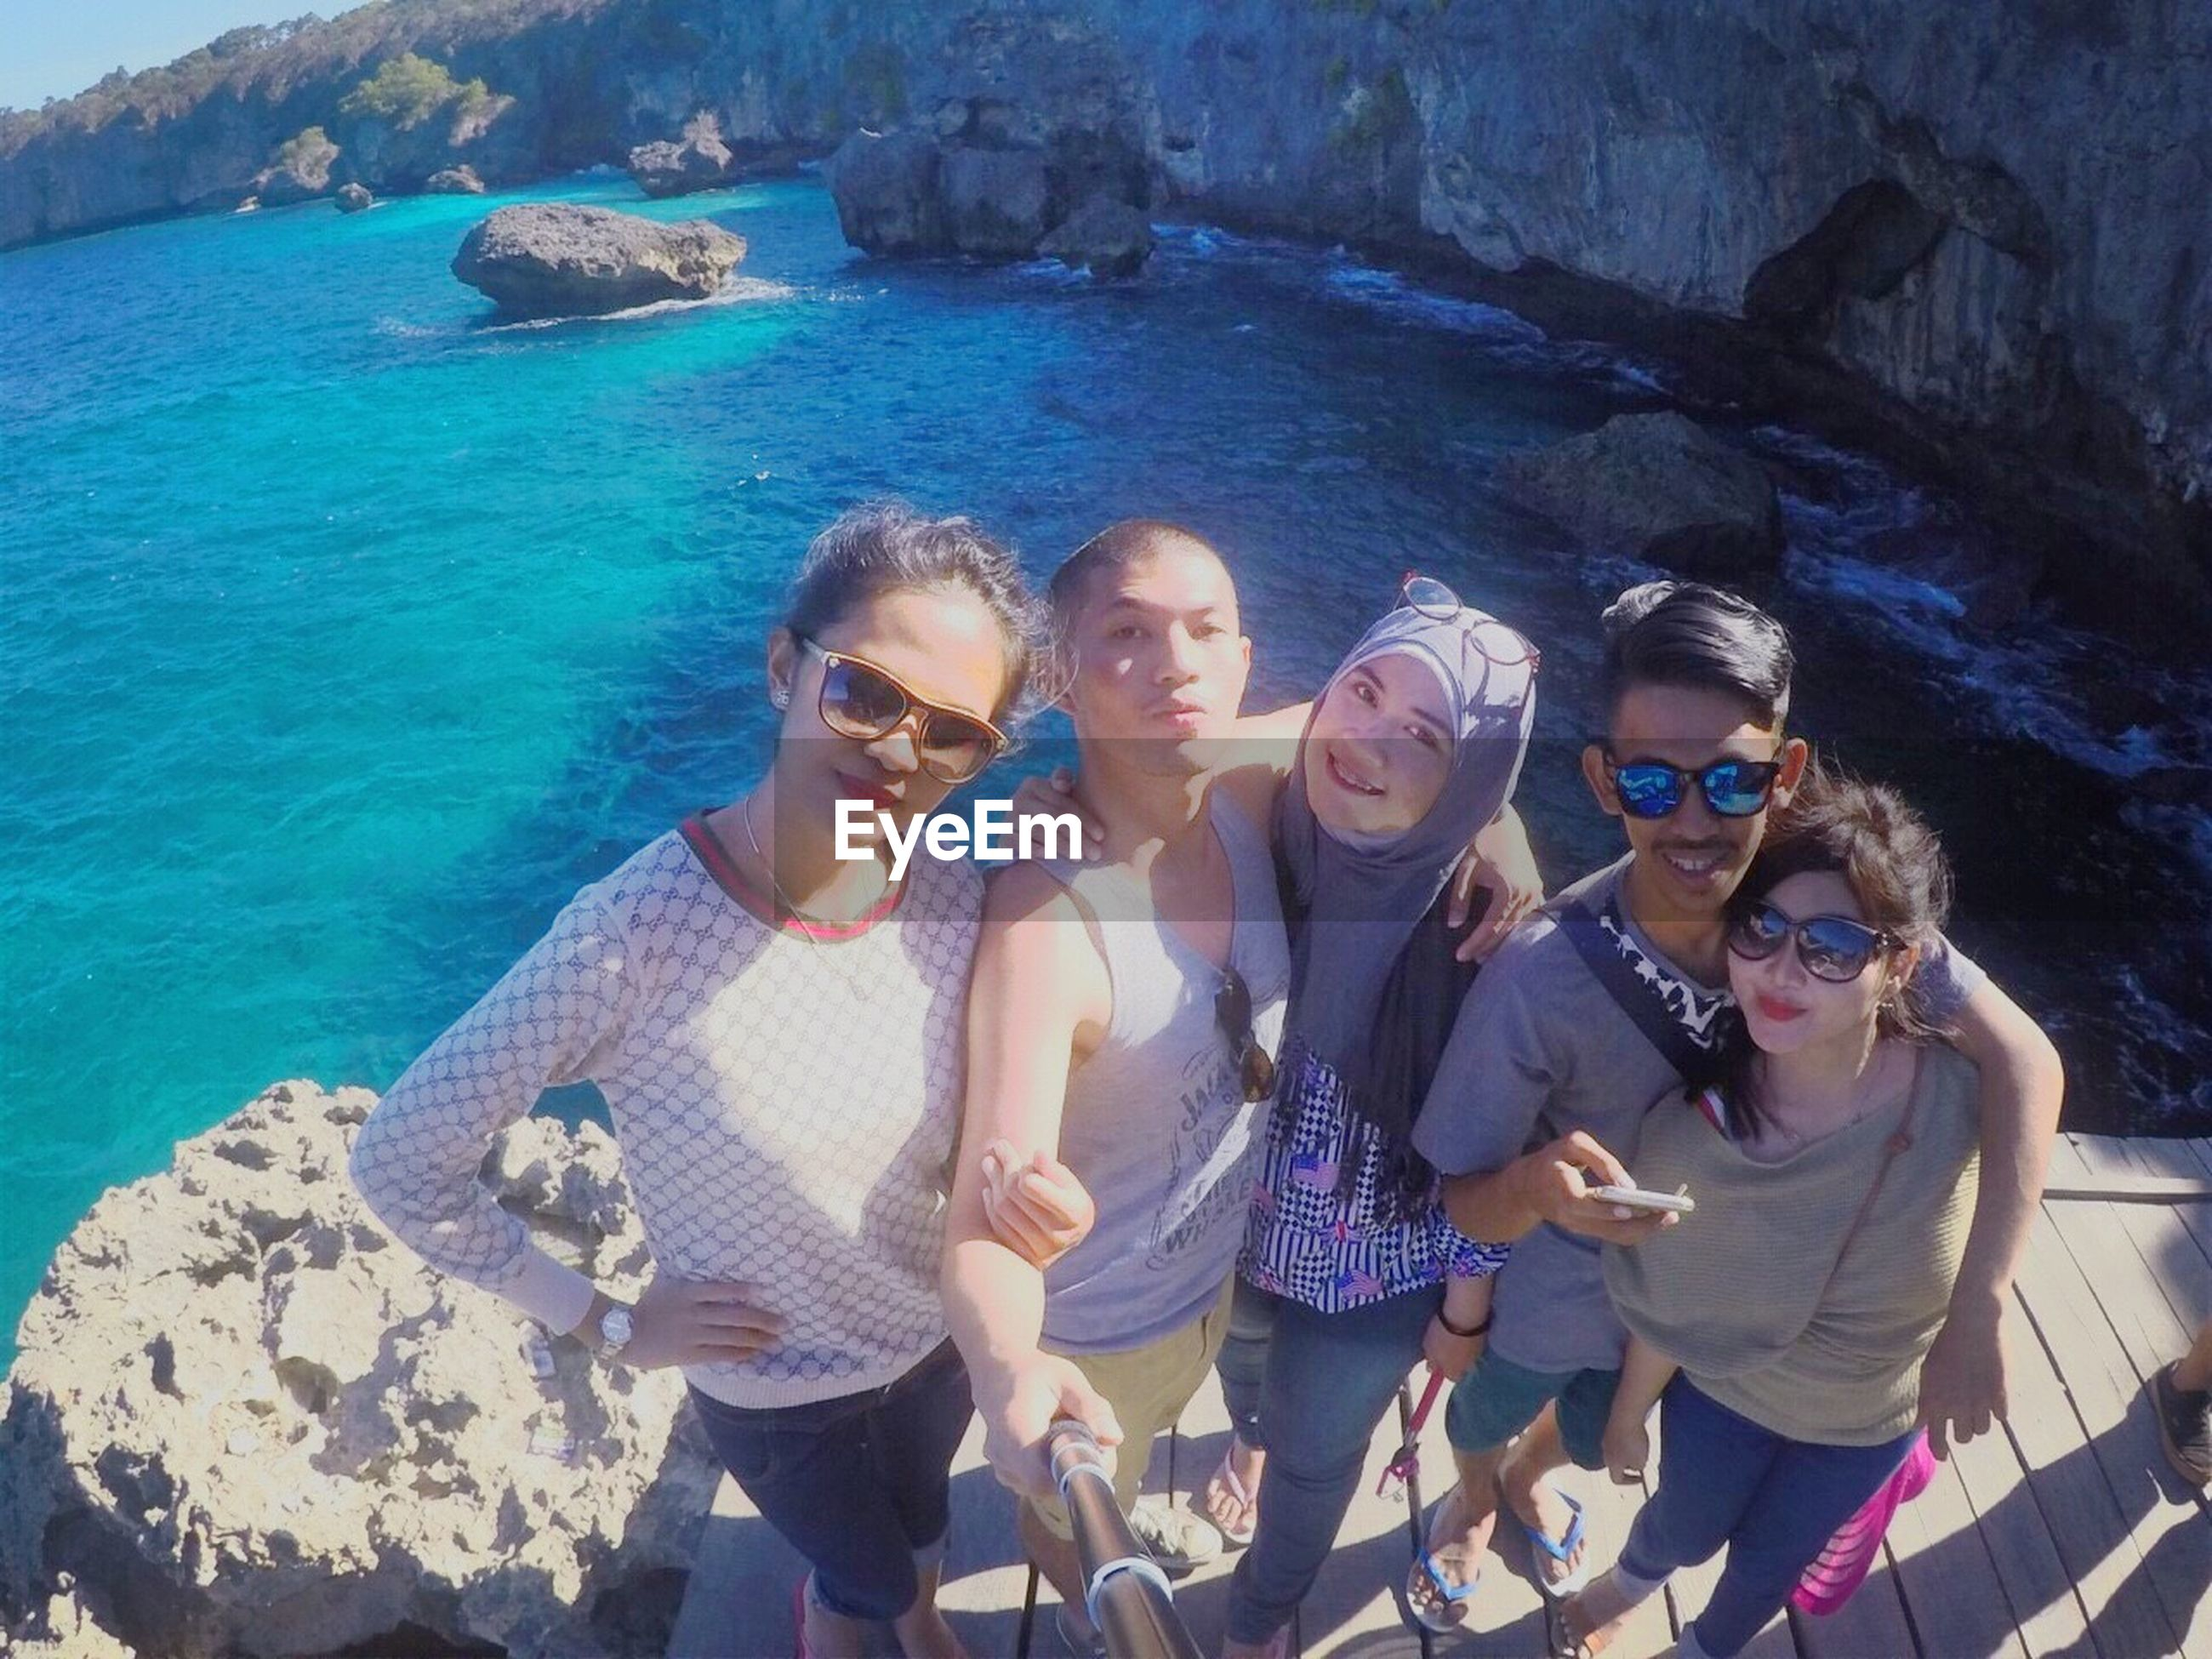 lifestyles, leisure activity, togetherness, bonding, person, love, water, casual clothing, young men, enjoyment, young adult, friendship, vacations, happiness, smiling, fun, three quarter length